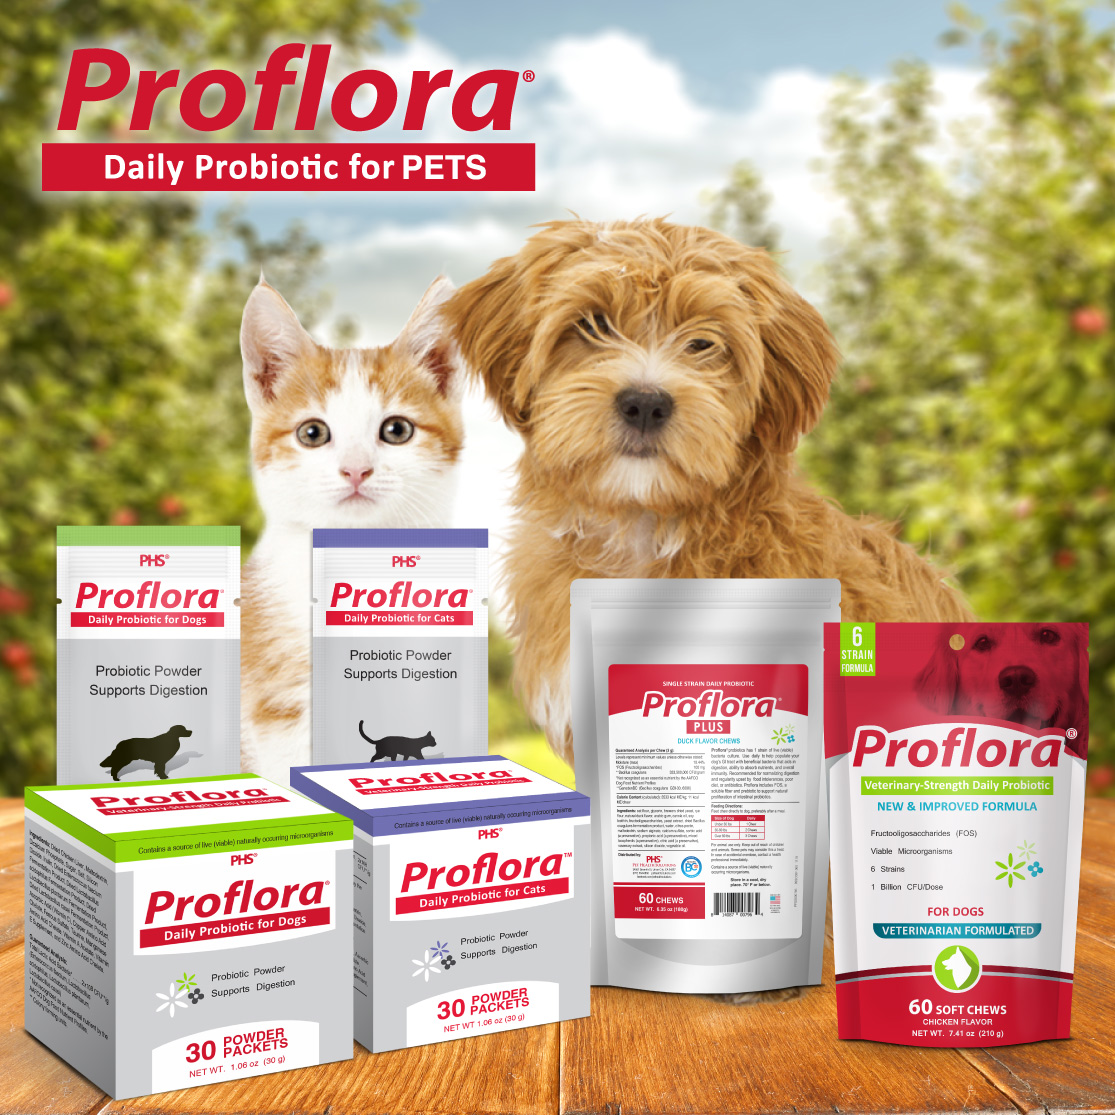 Proflora Daily Probiotic for PETS